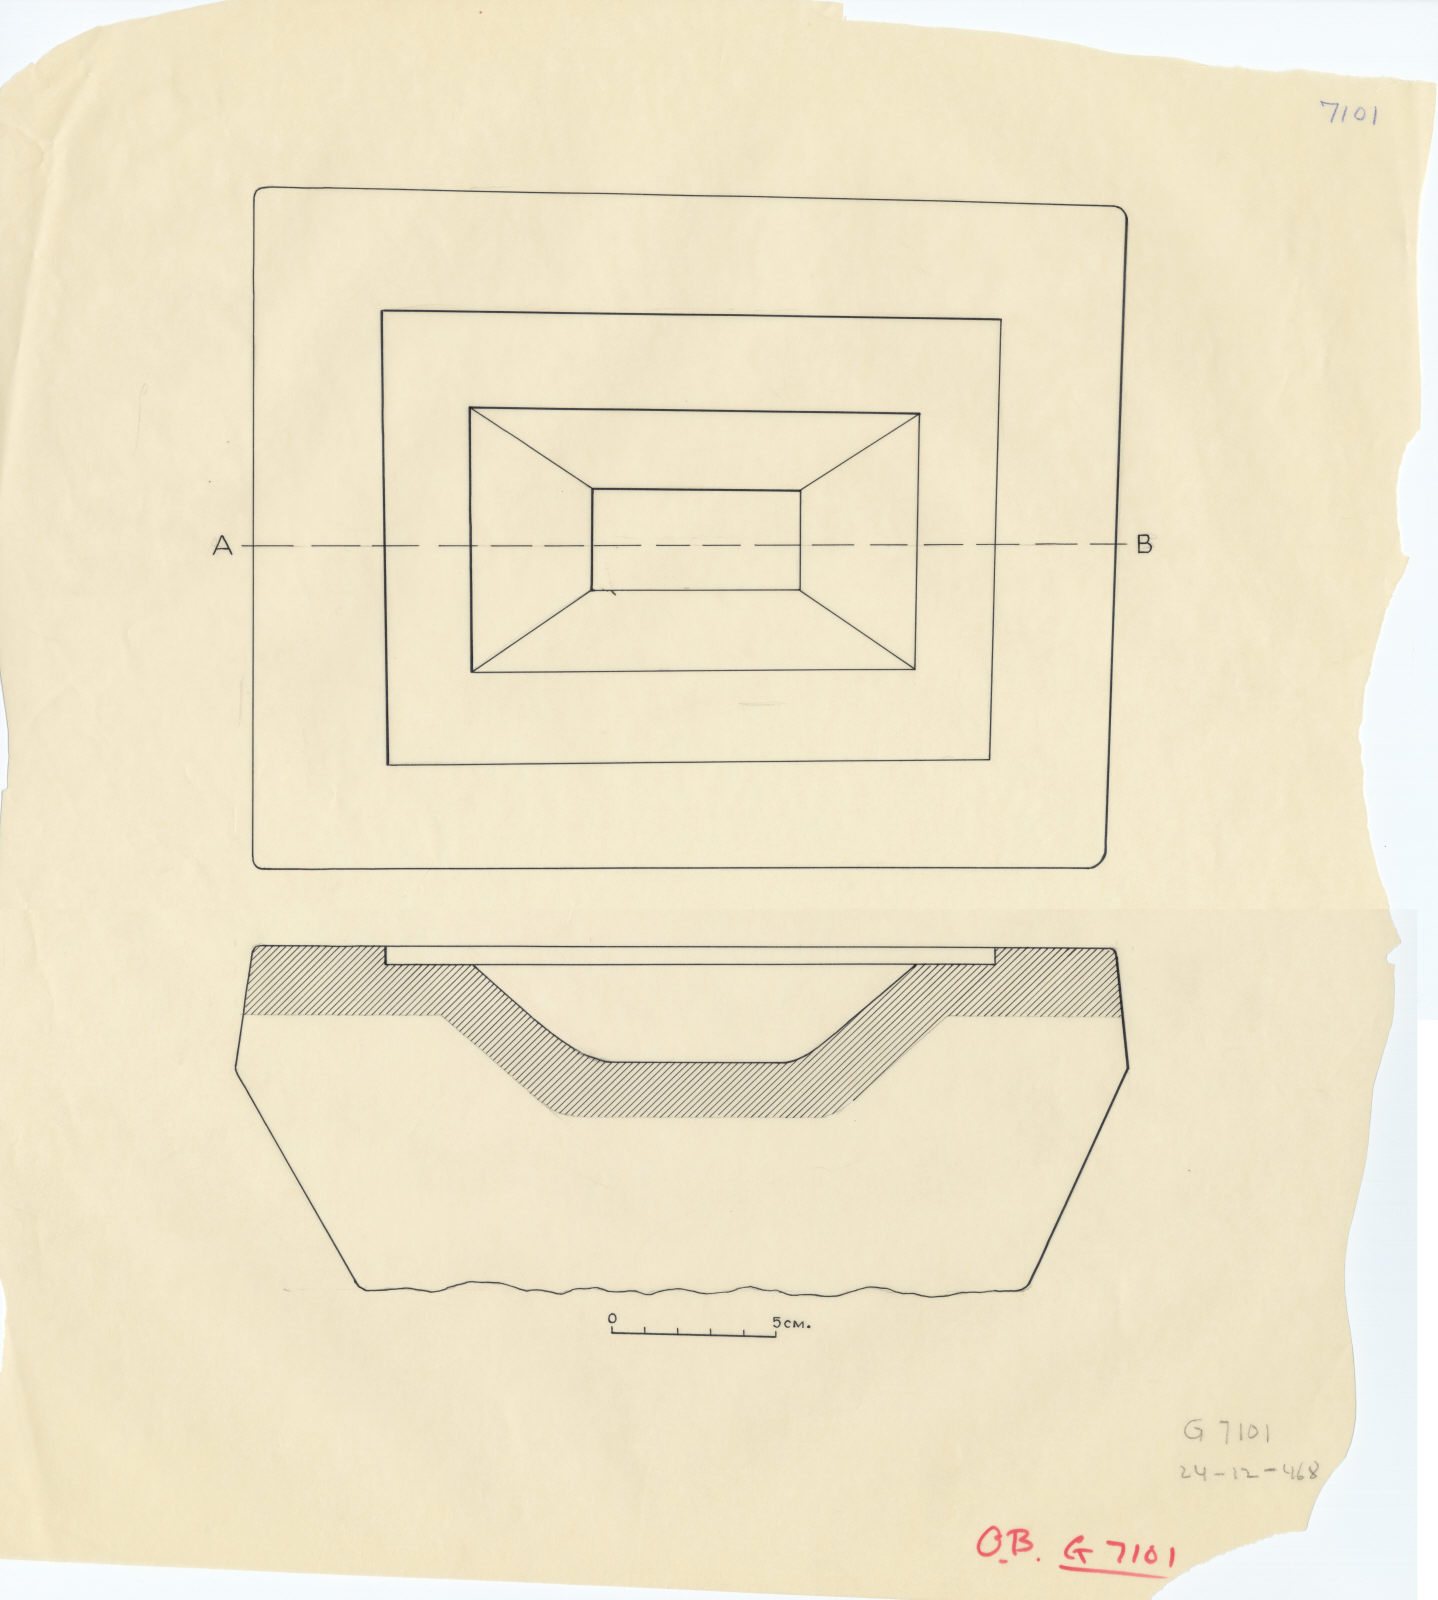 Drawings: G 7101, offering basin, plan and section